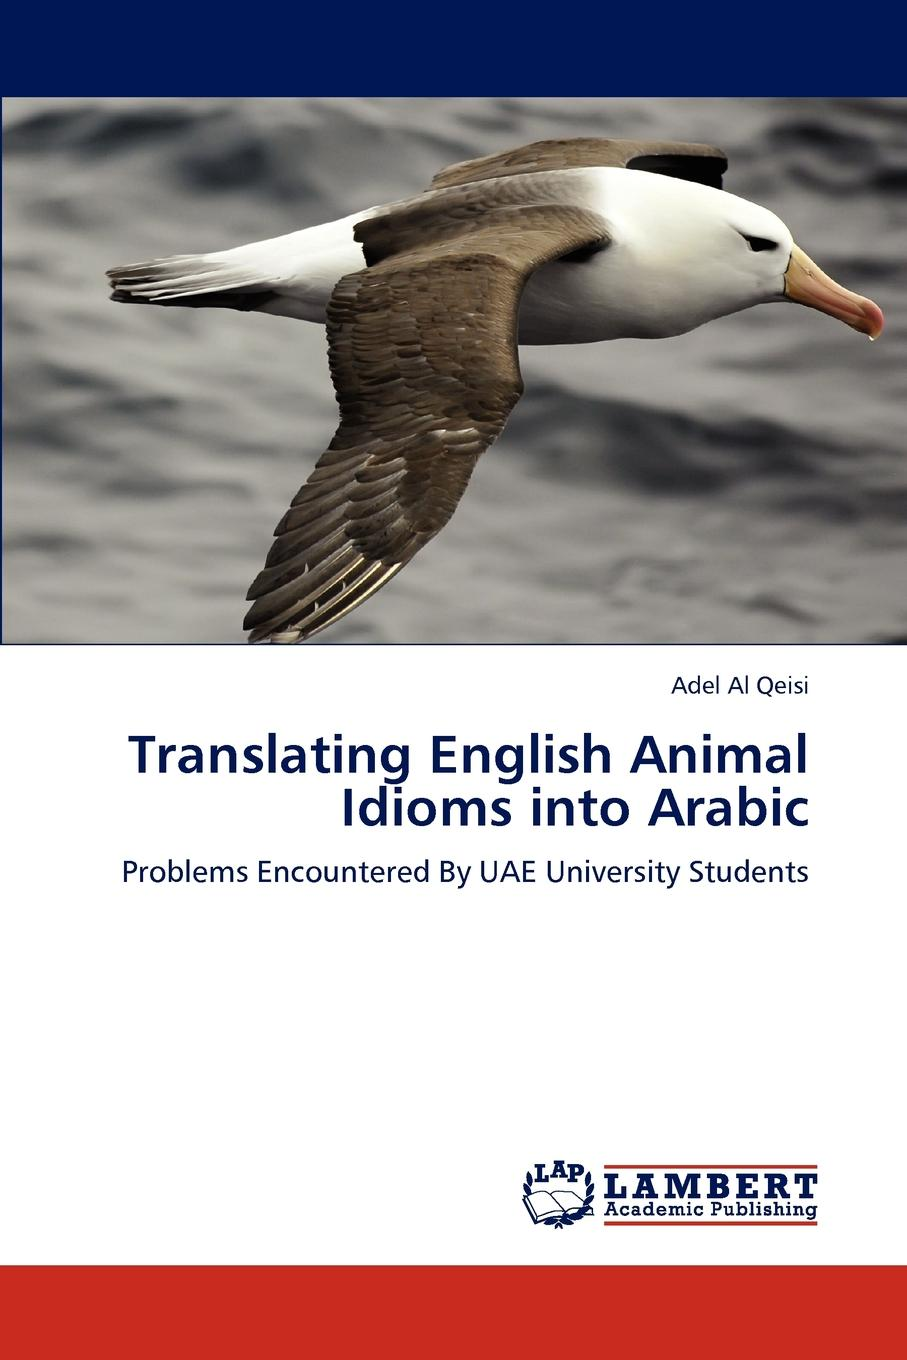 Adel Al Qeisi Translating English Animal Idioms Into Arabic quiet as a mouse and other animal idioms